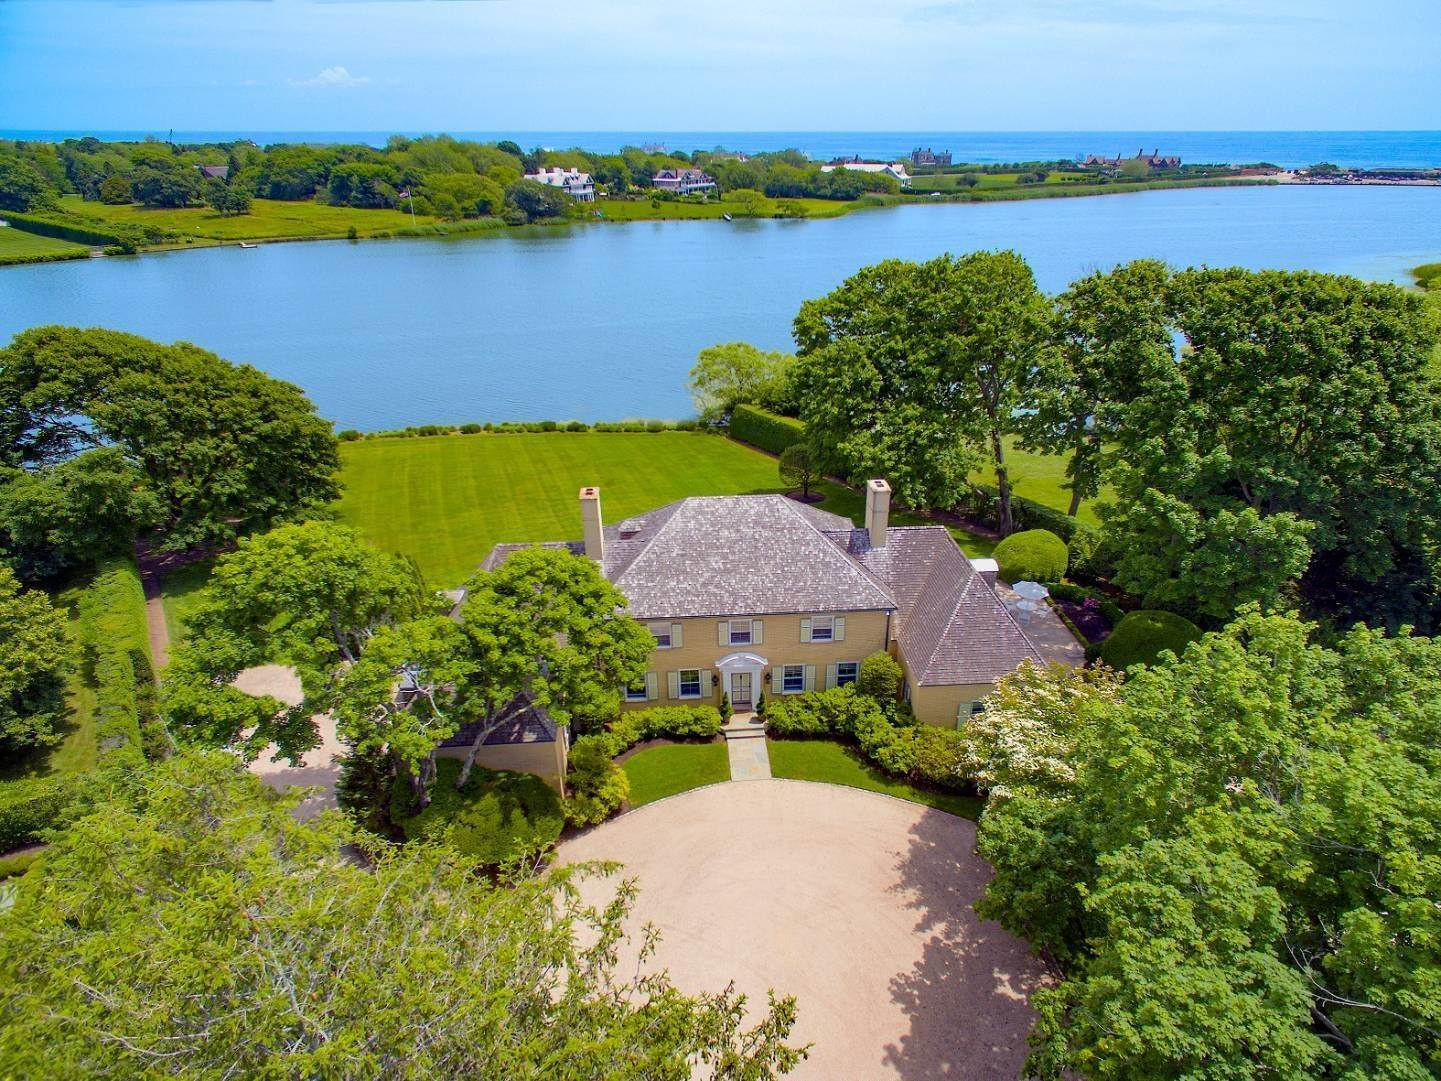 Single Family Home for Sale at Lake Agawam Estate 310 First Neck Lane, Southampton, NY 11968